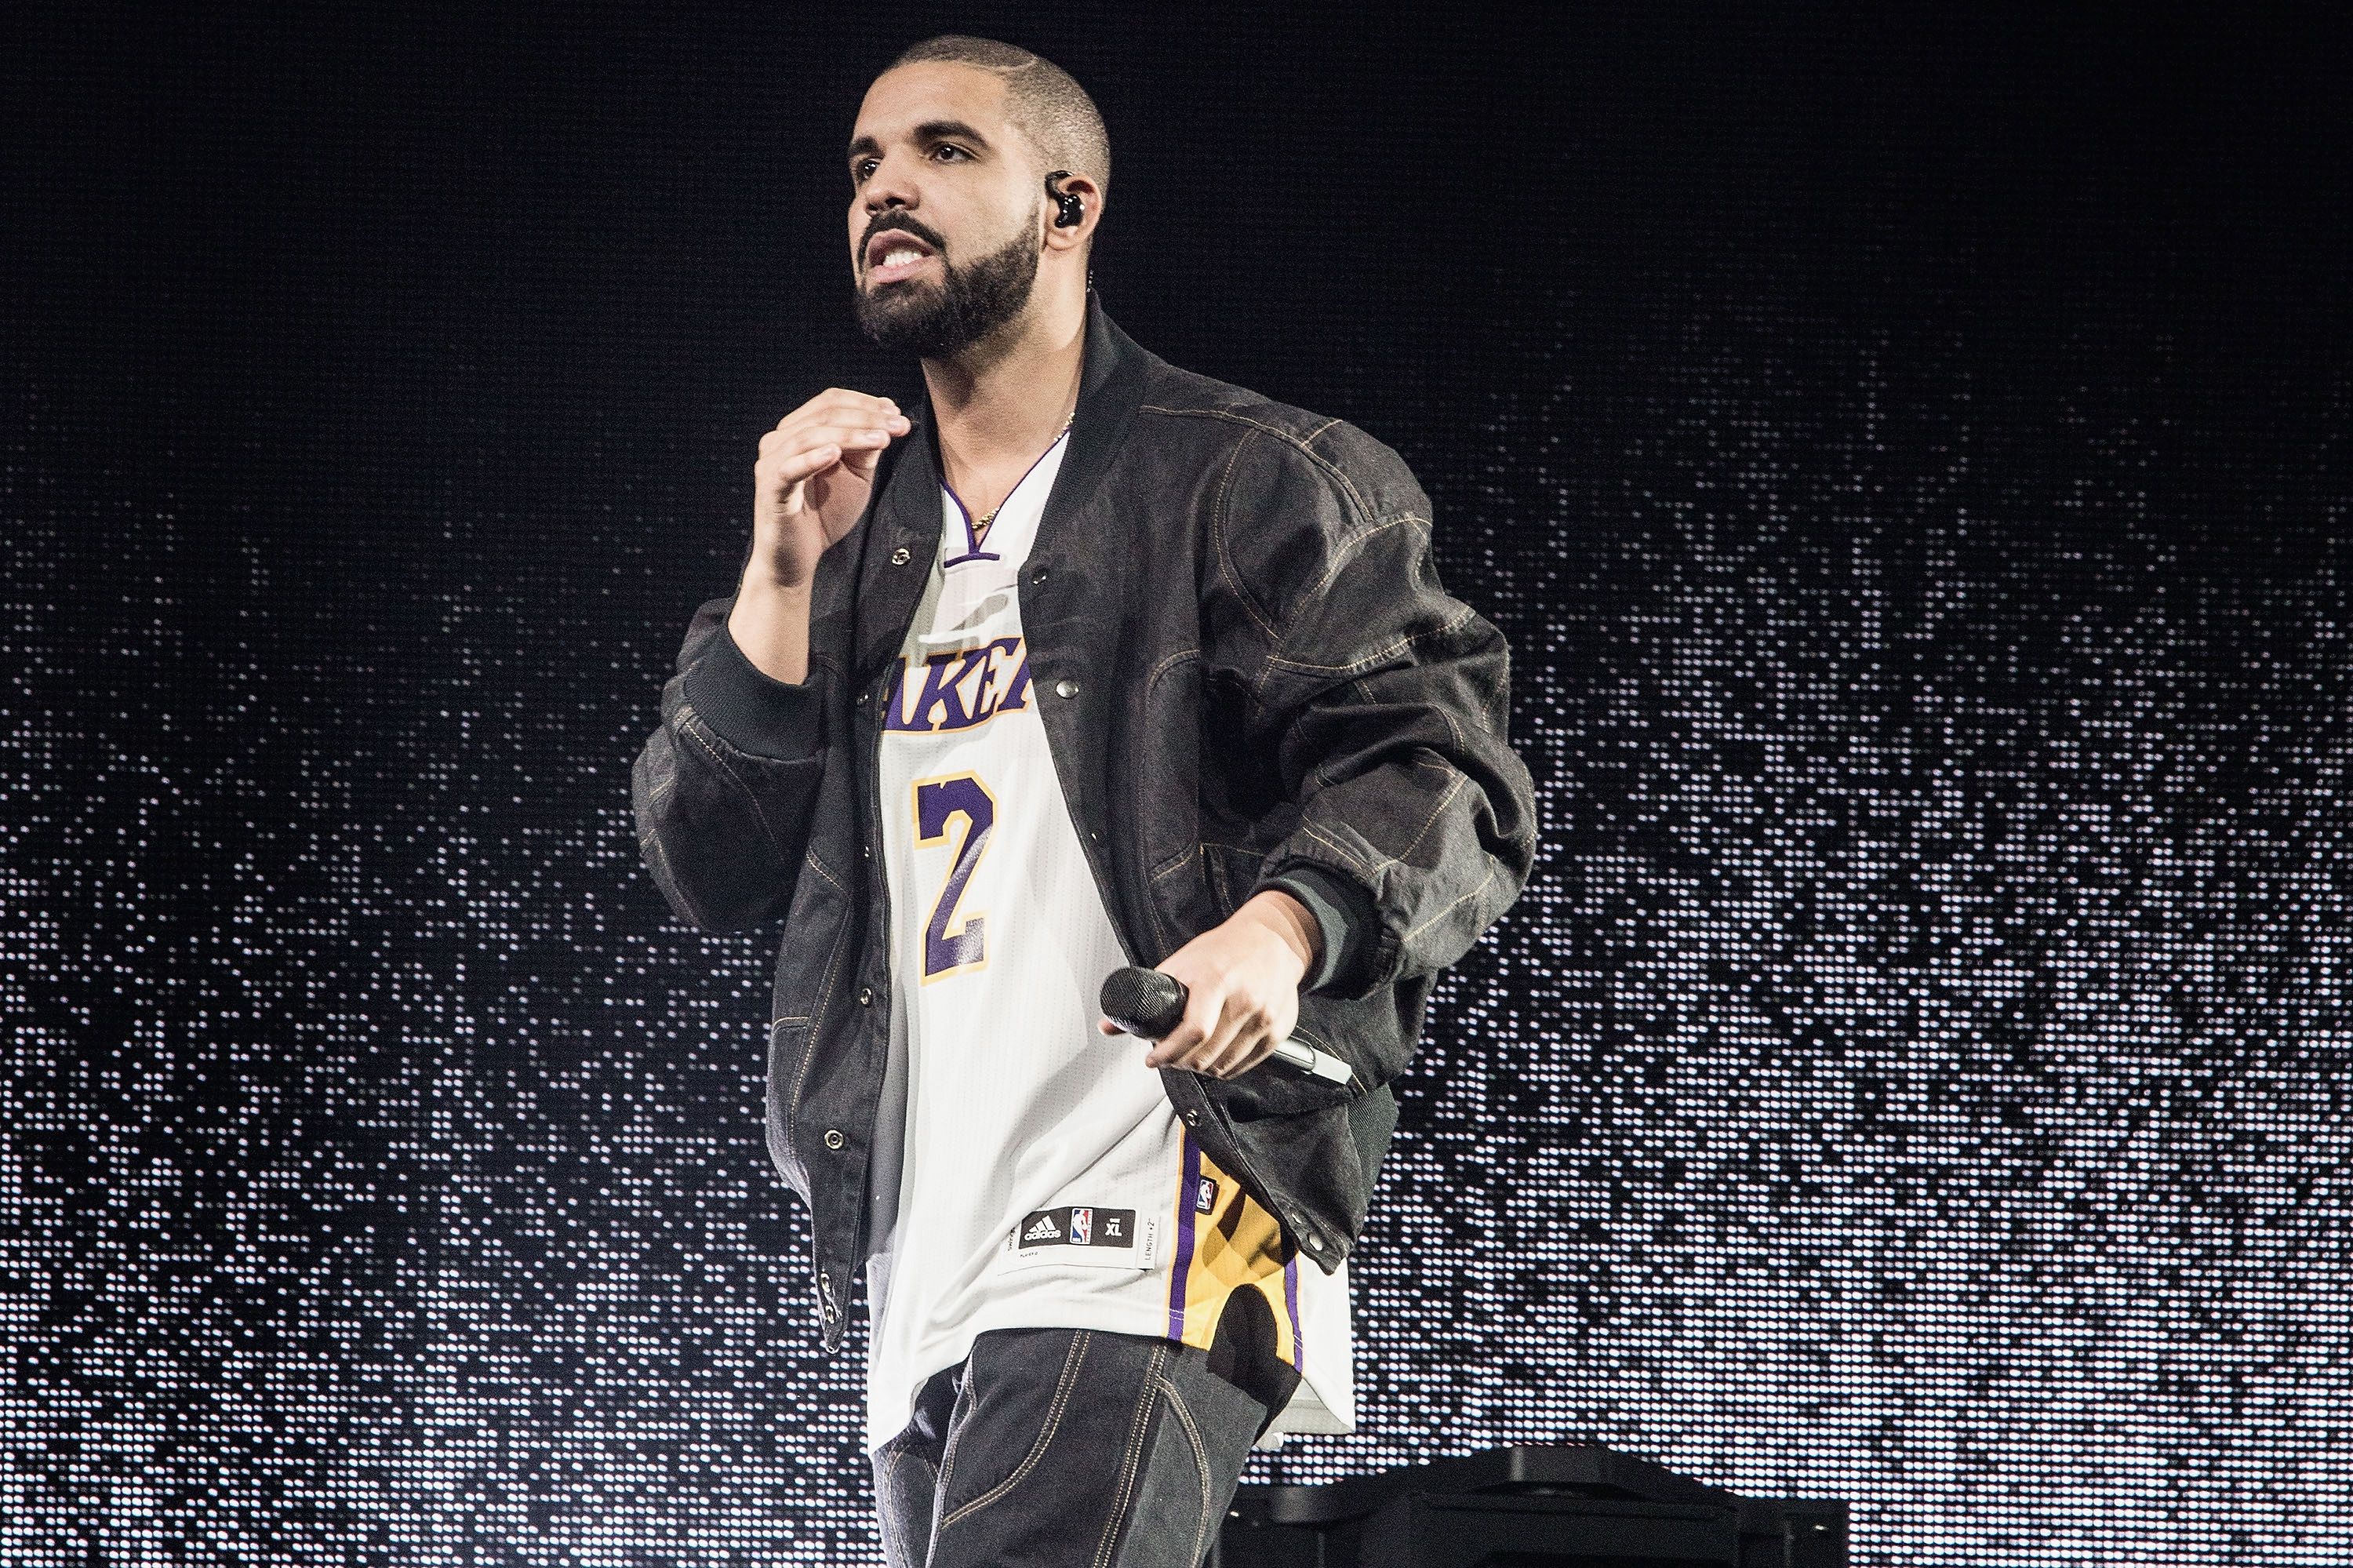 Drake performs at The Forum on September 27, 2016 in Inglewood, California.